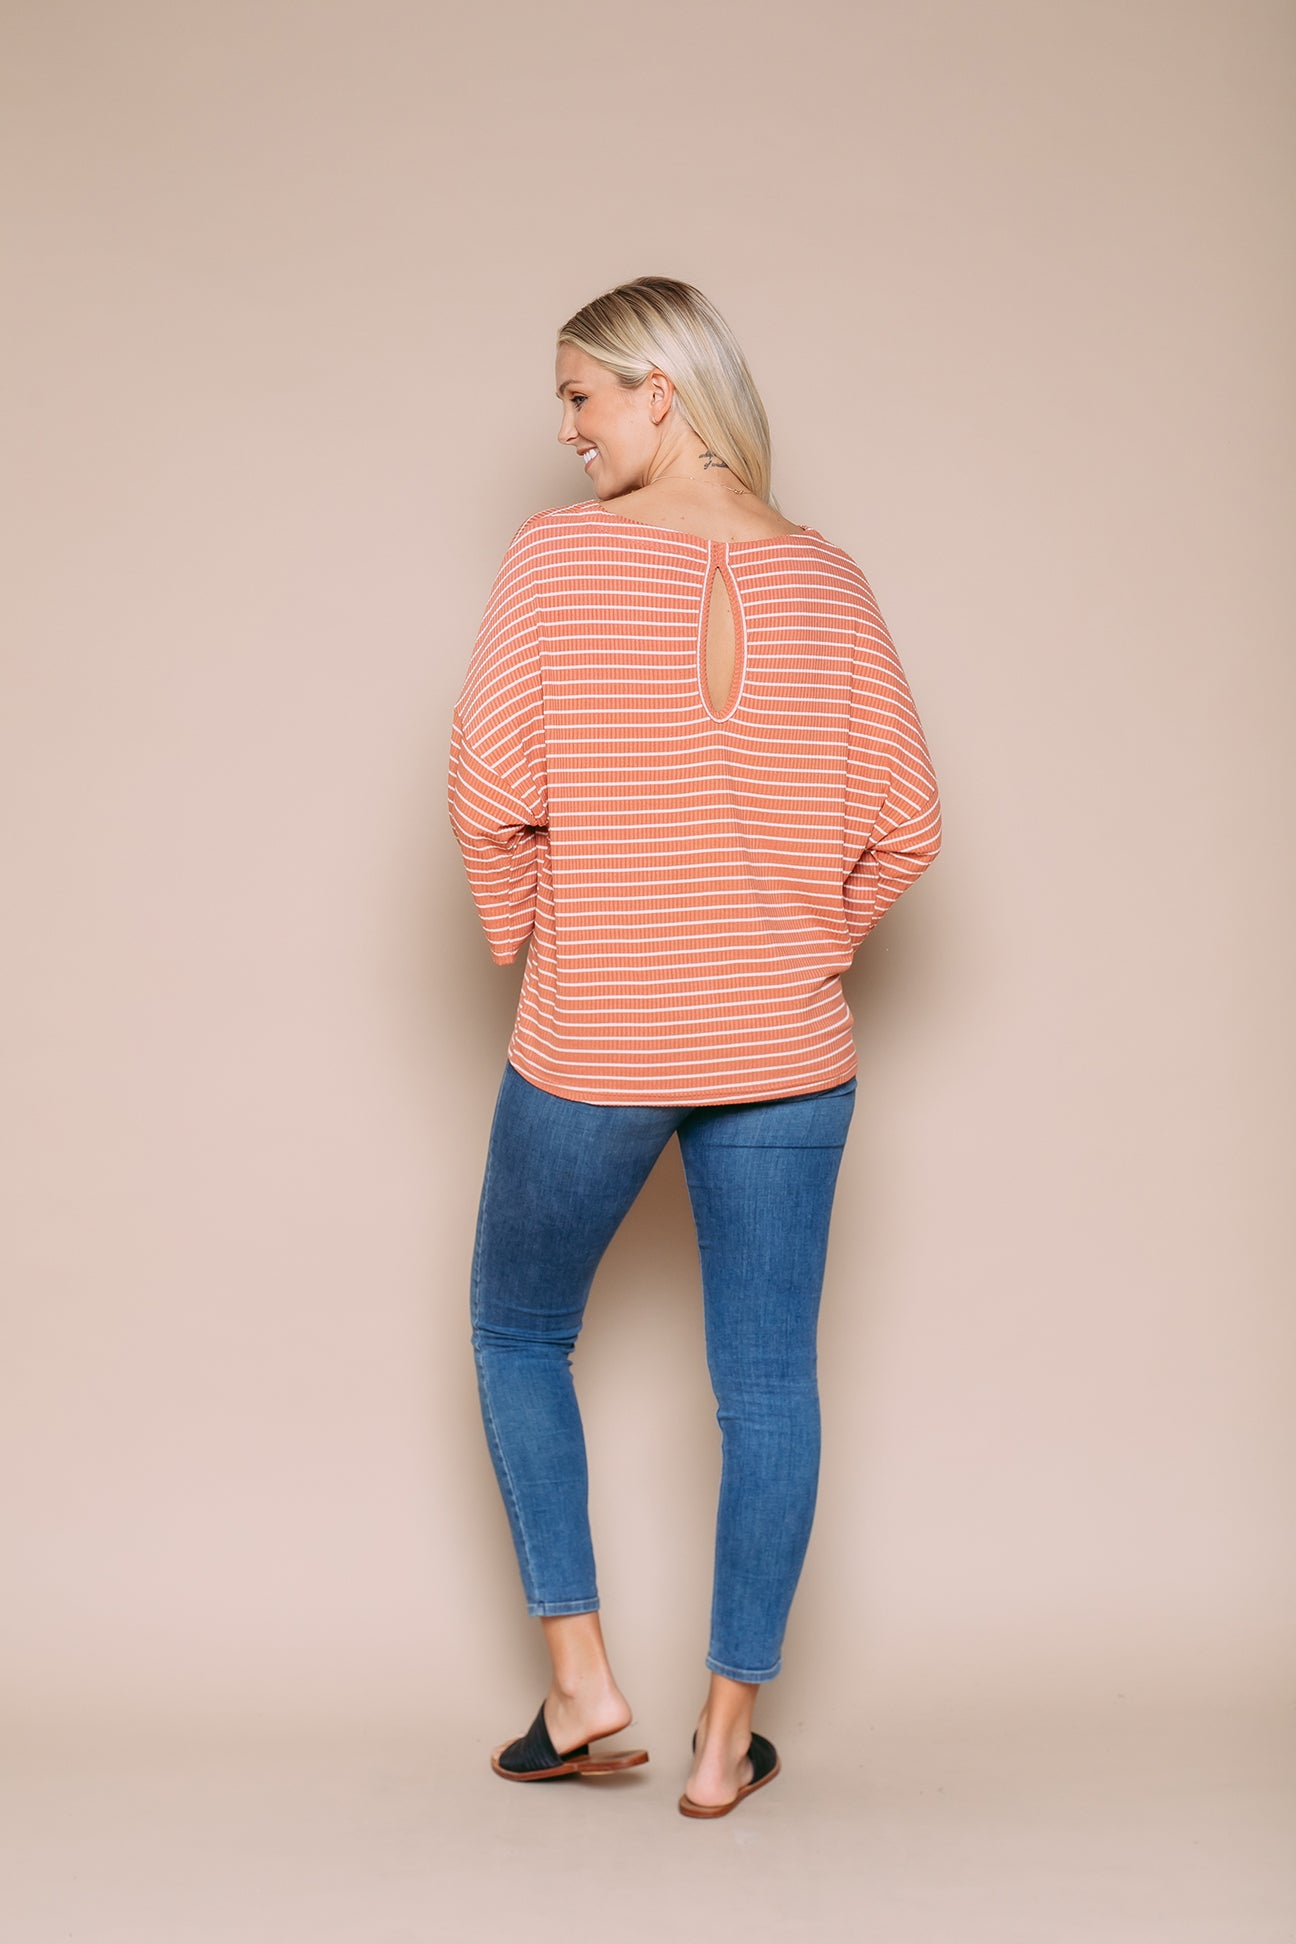 Poppy - Drapy Rib Tee With Keyhole Back Desert Clay Stripe